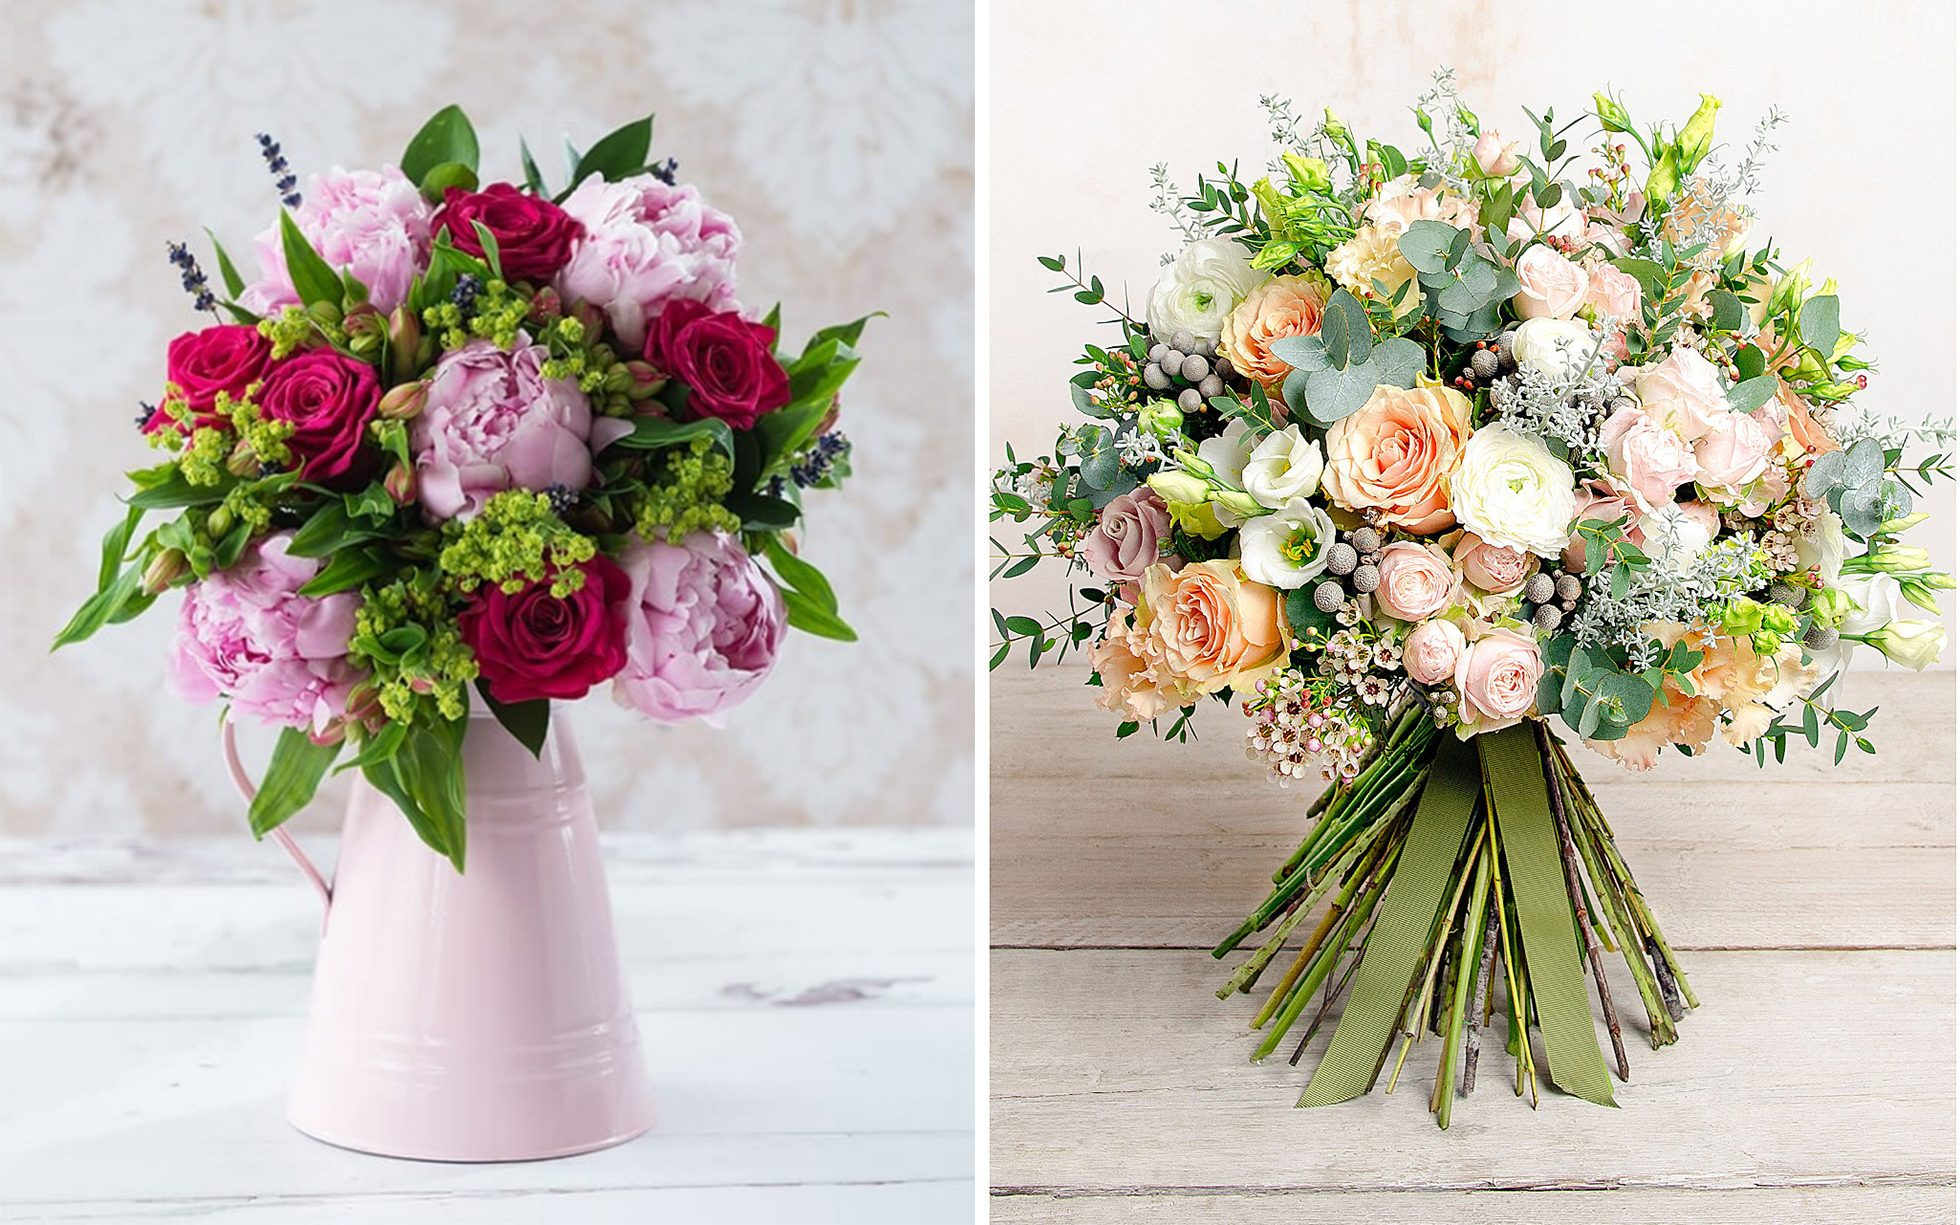 6 Of The Best Mothers Day Flowers And Bouquets To Buy In